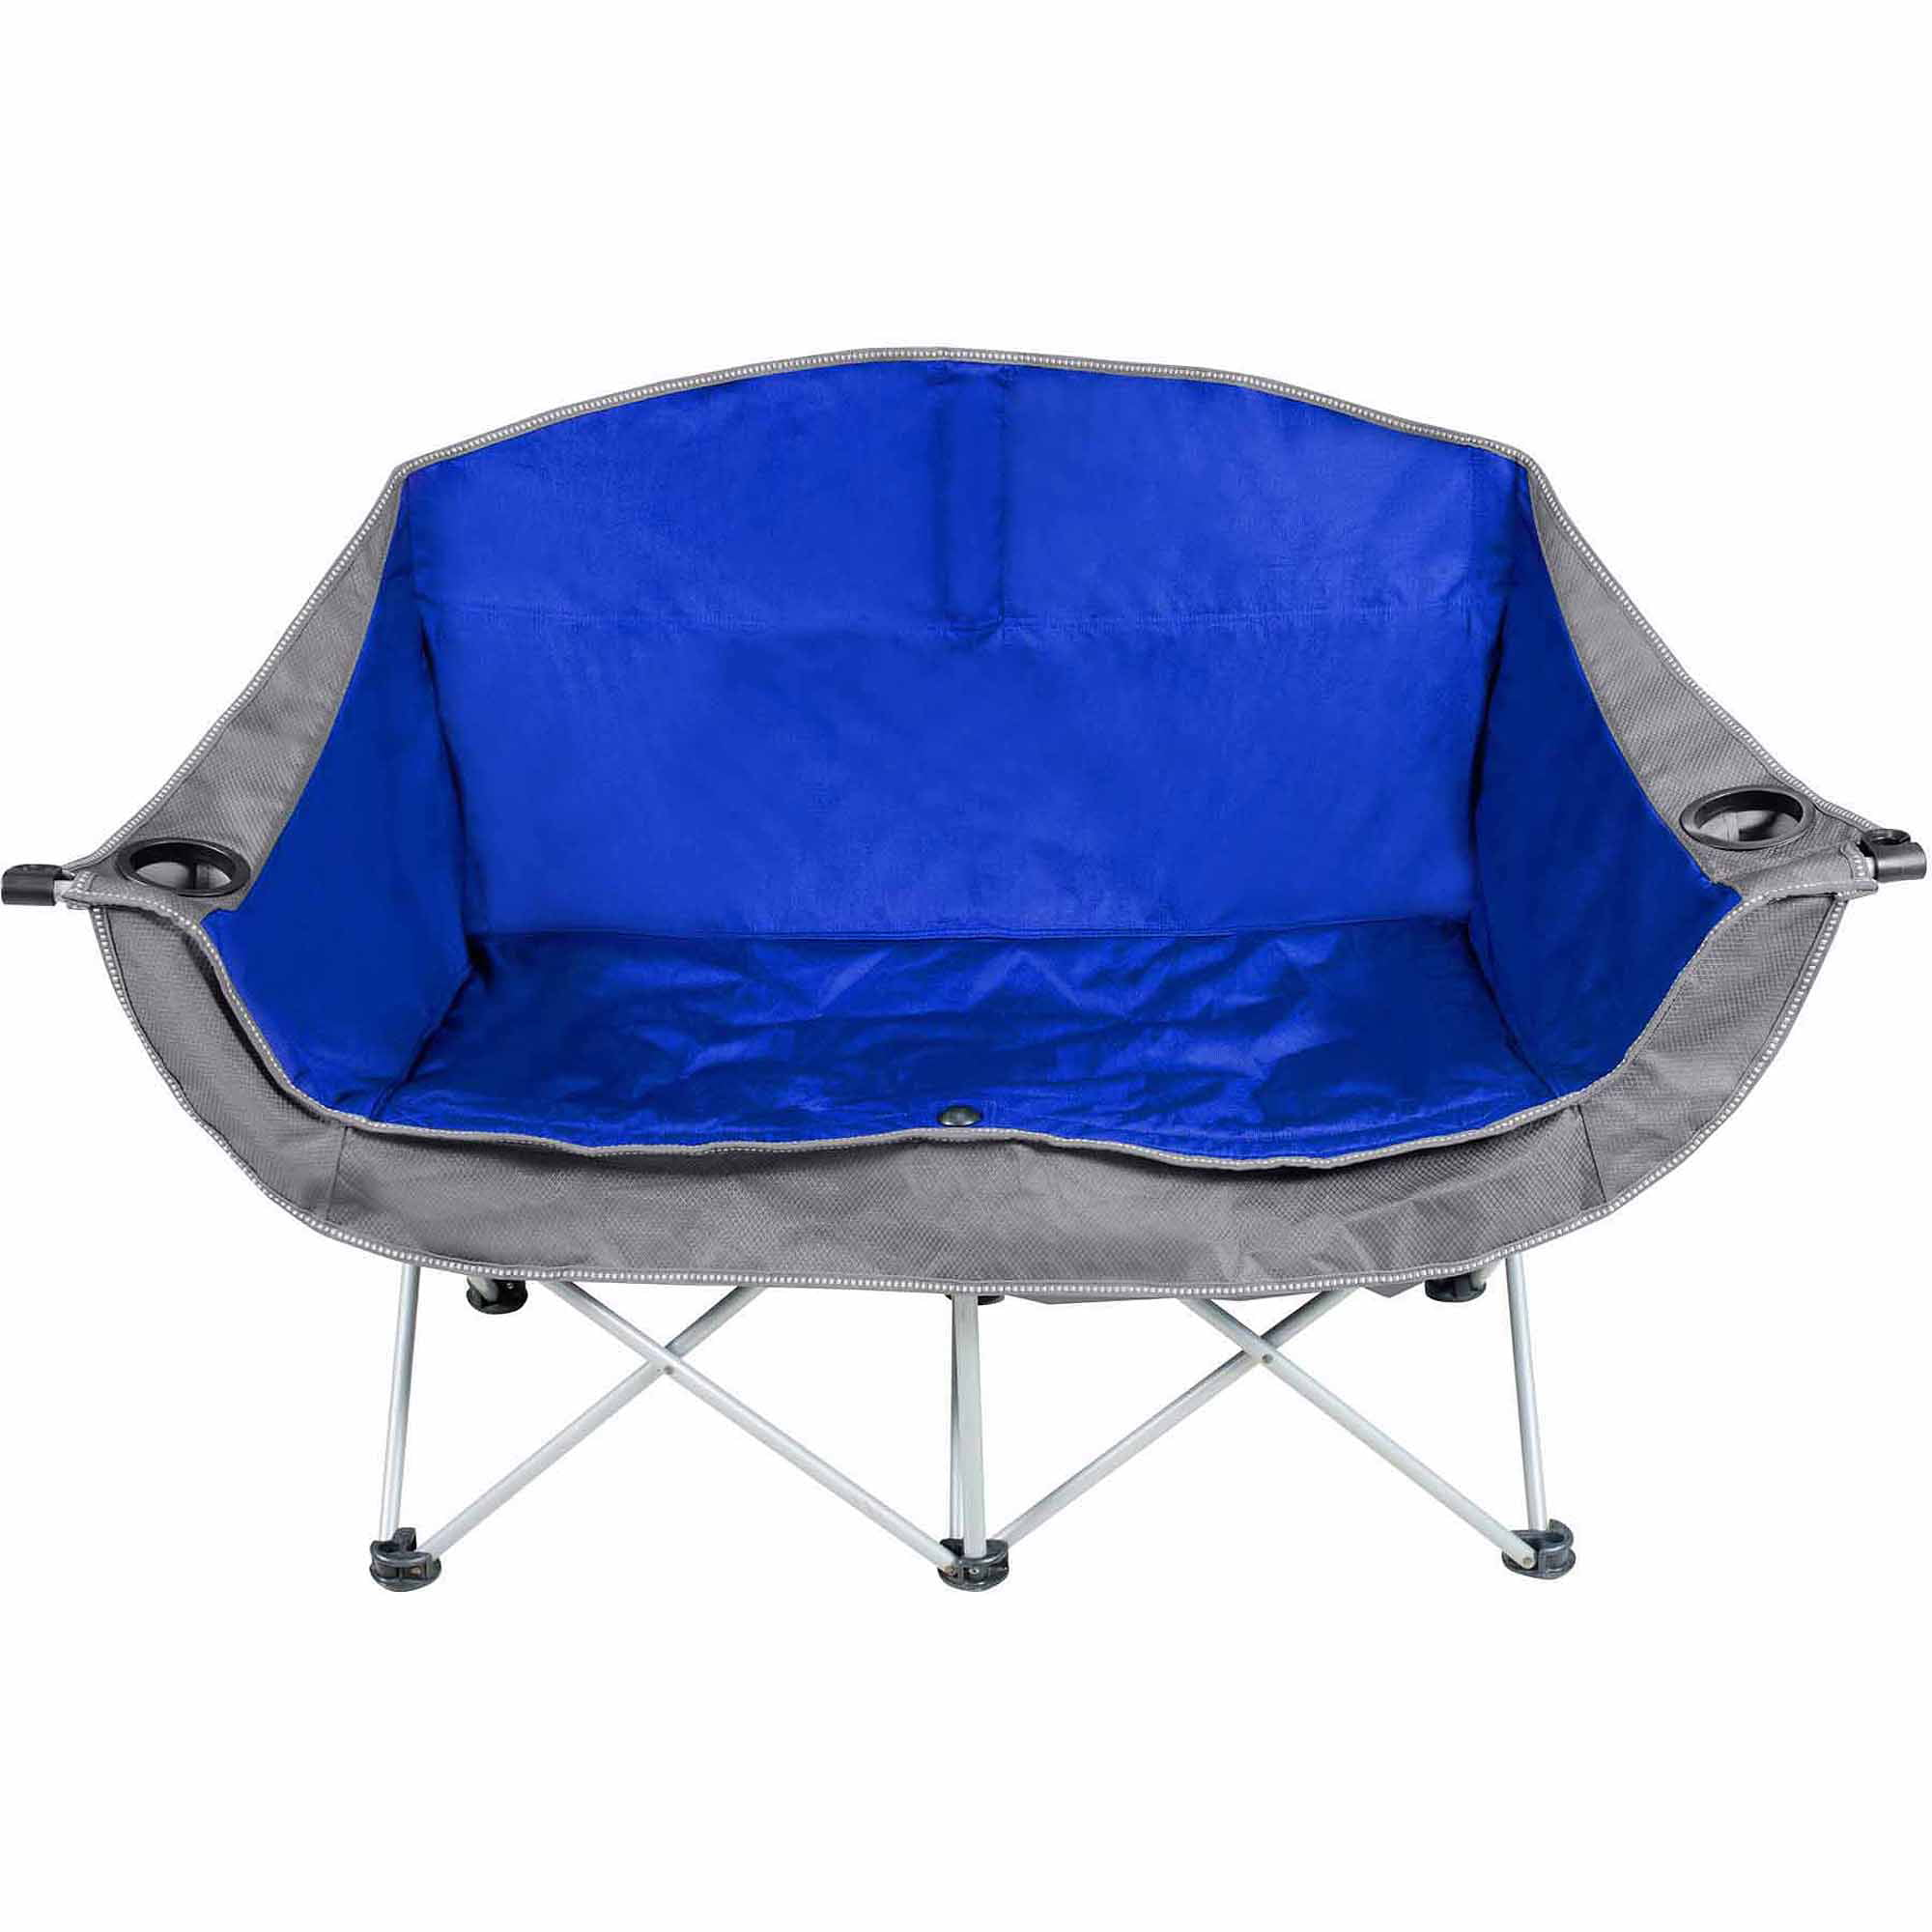 two seater lawn chair covers with pockets ozark trail 2 person camping love seat walmart com